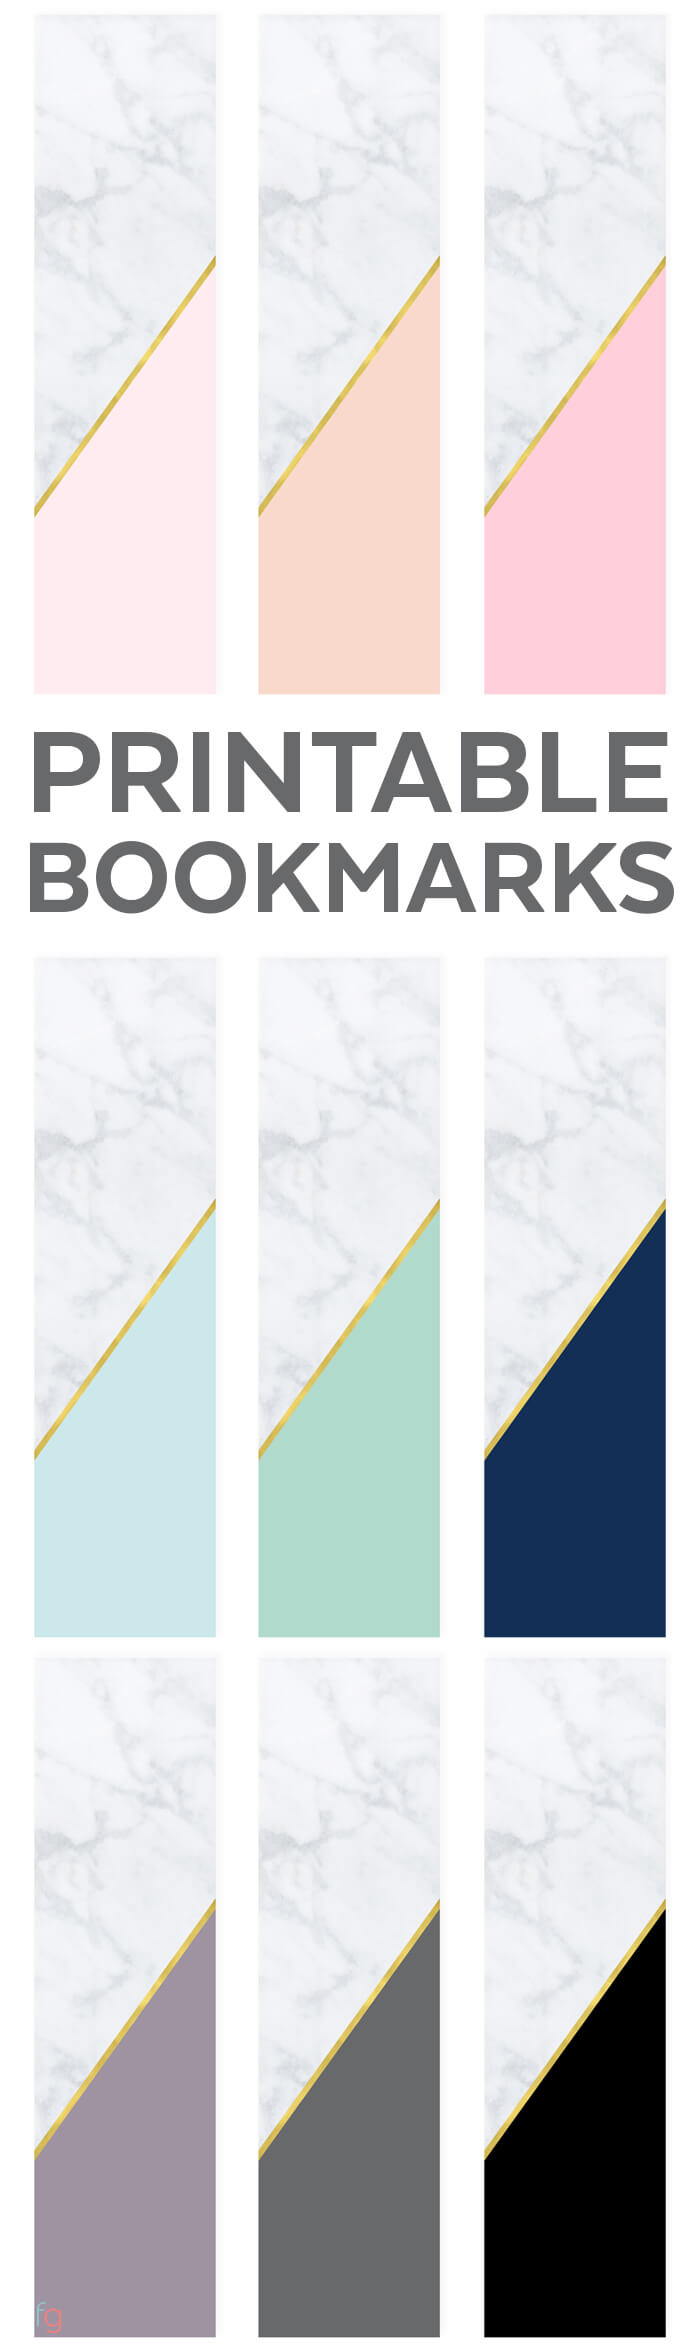 Bookmarks Printable | Free Printable Bookmarks Free | Book Lovers | Free Printable Bookmarks for Adults | Modern Printables | Marble and Gold